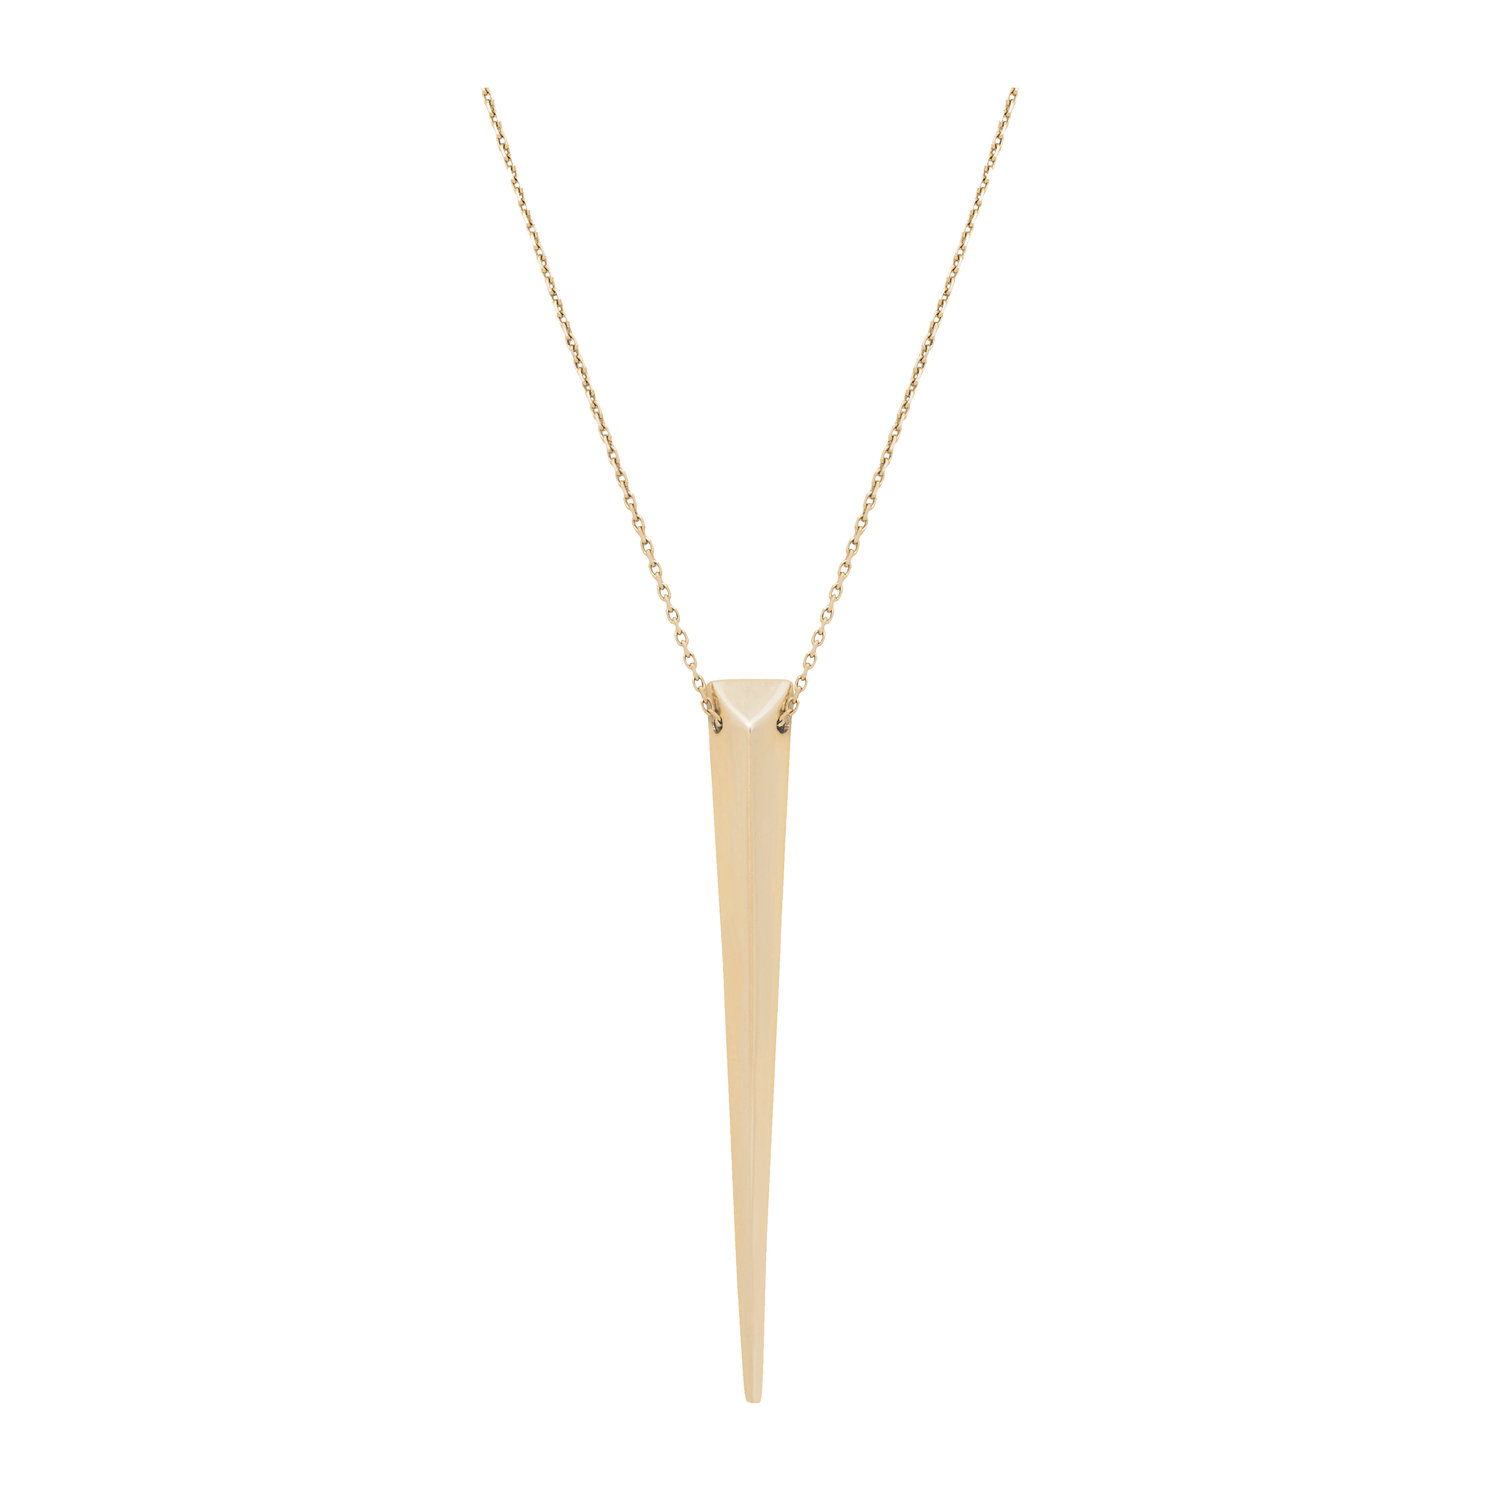 shop plain e necklace soho jezebel london jewellery jl